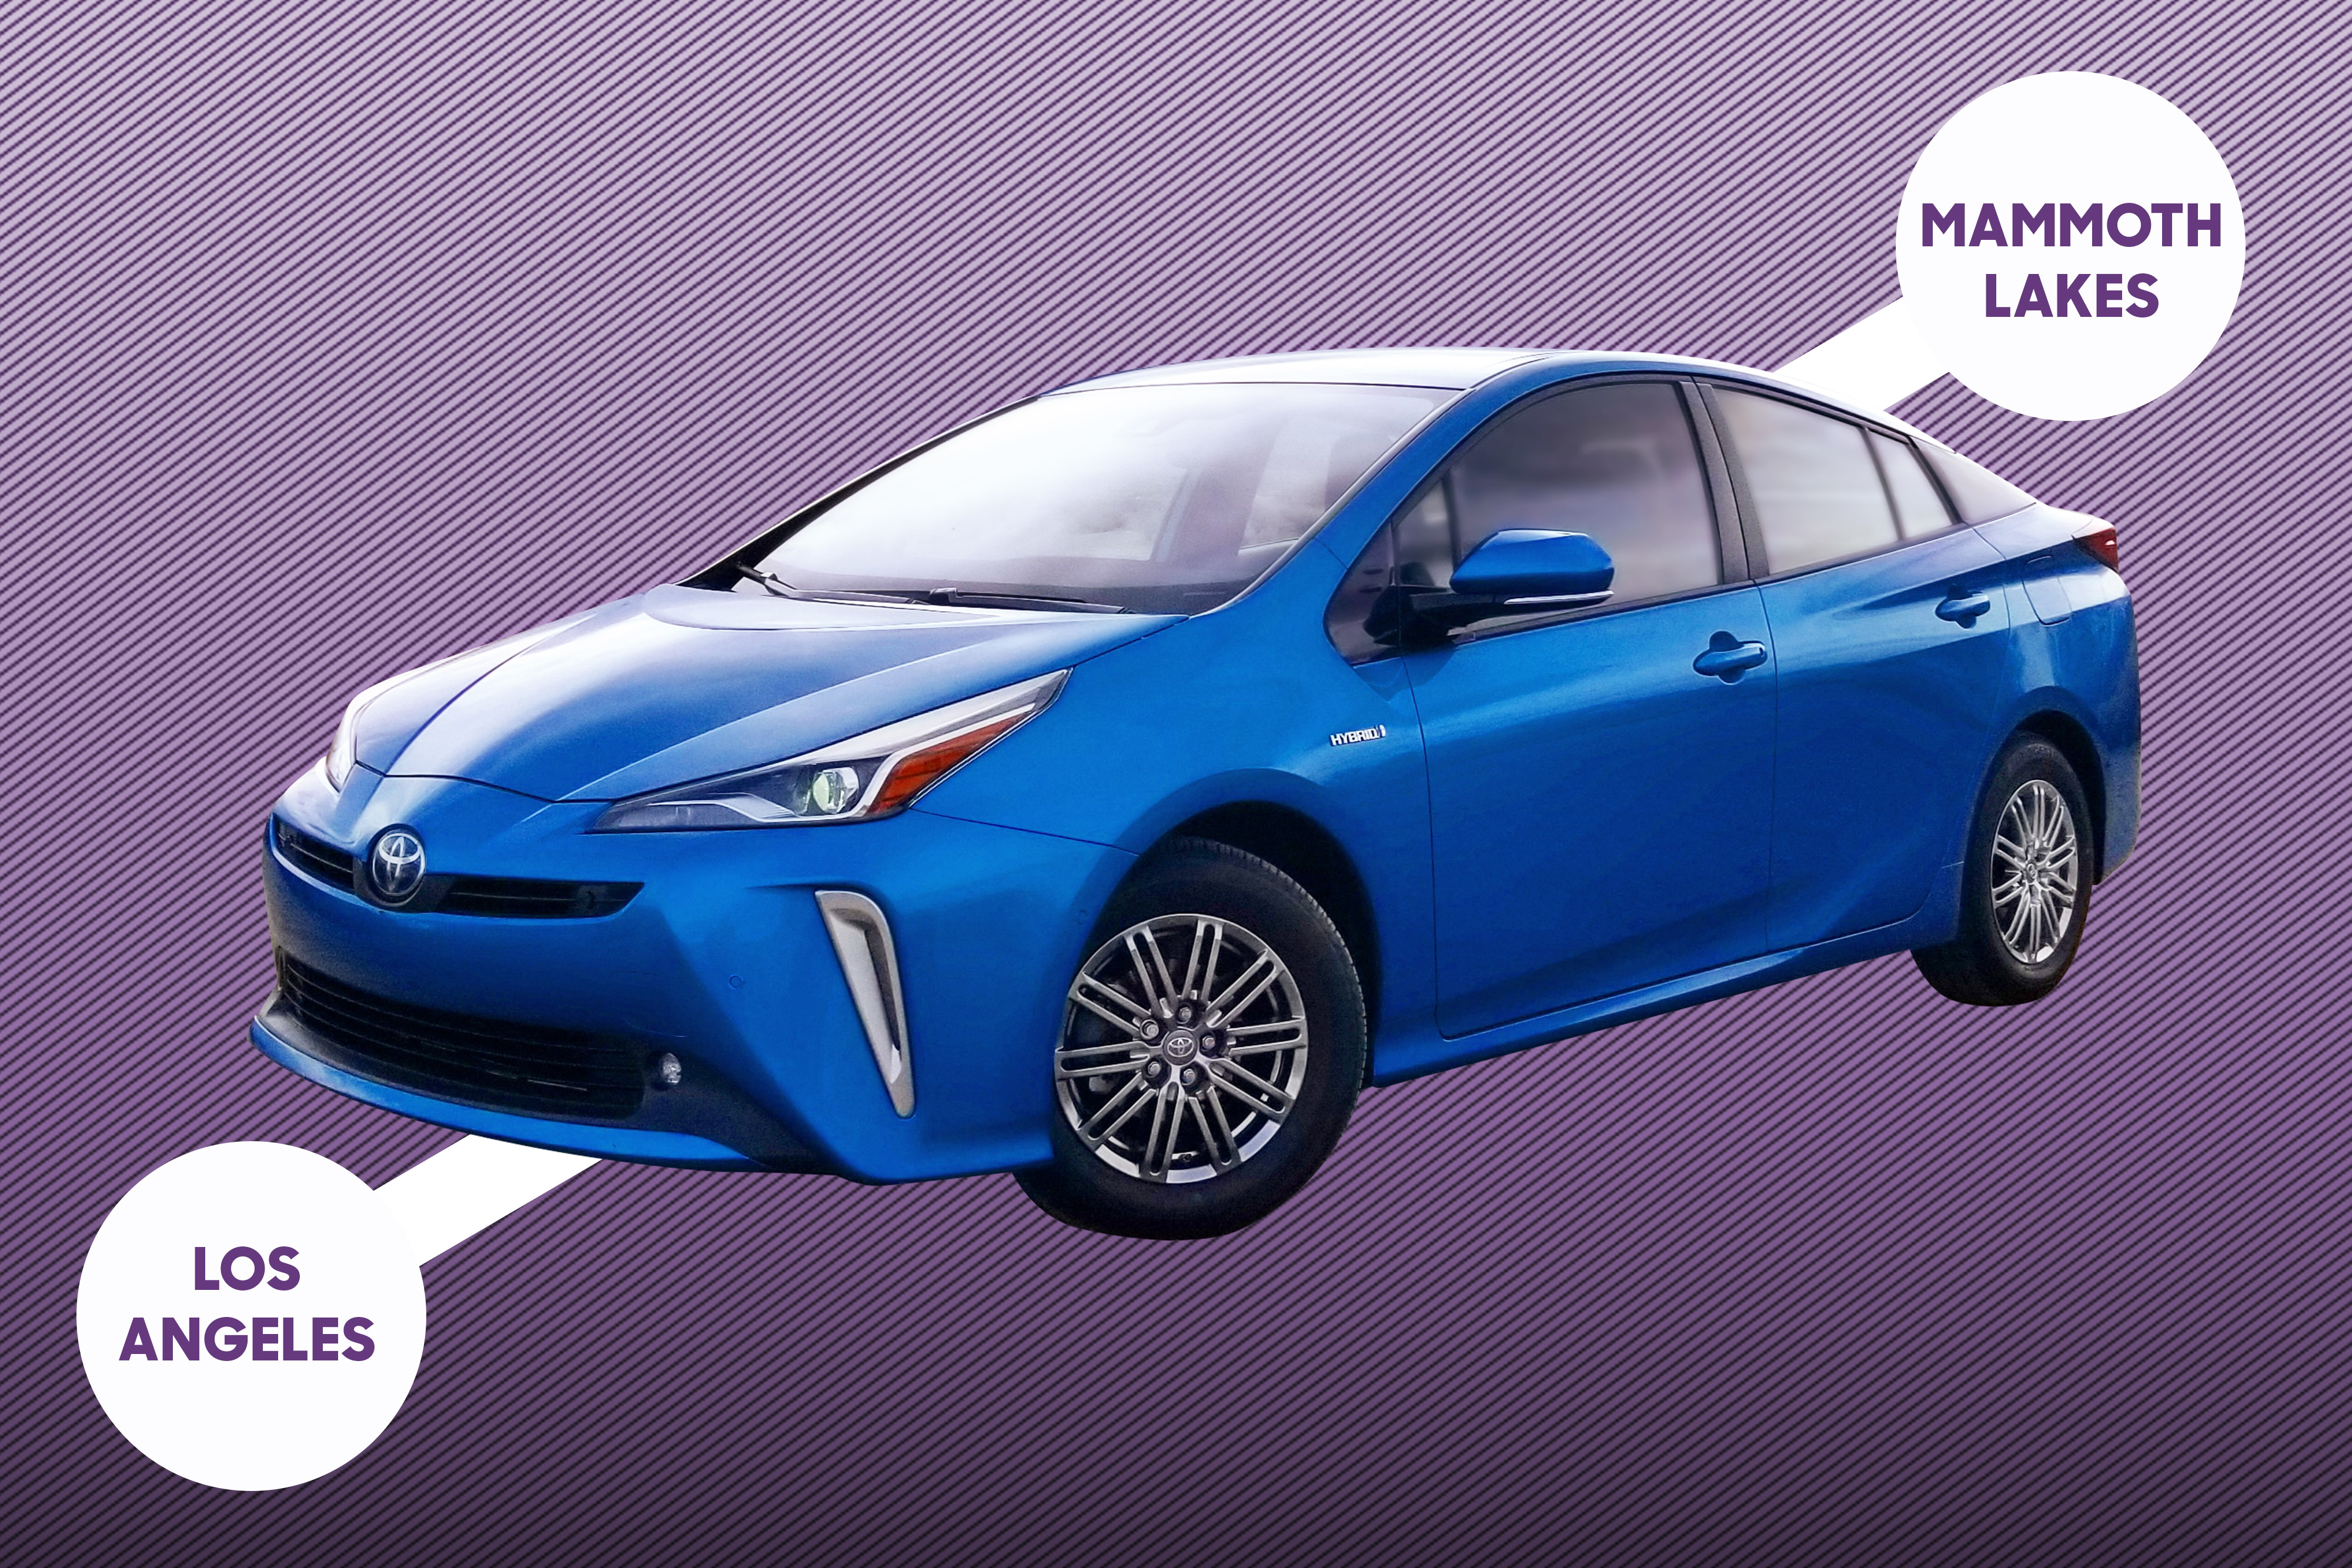 2019 Toyota Prius AWD-e: Is All-Wheel Drive Worth MPG